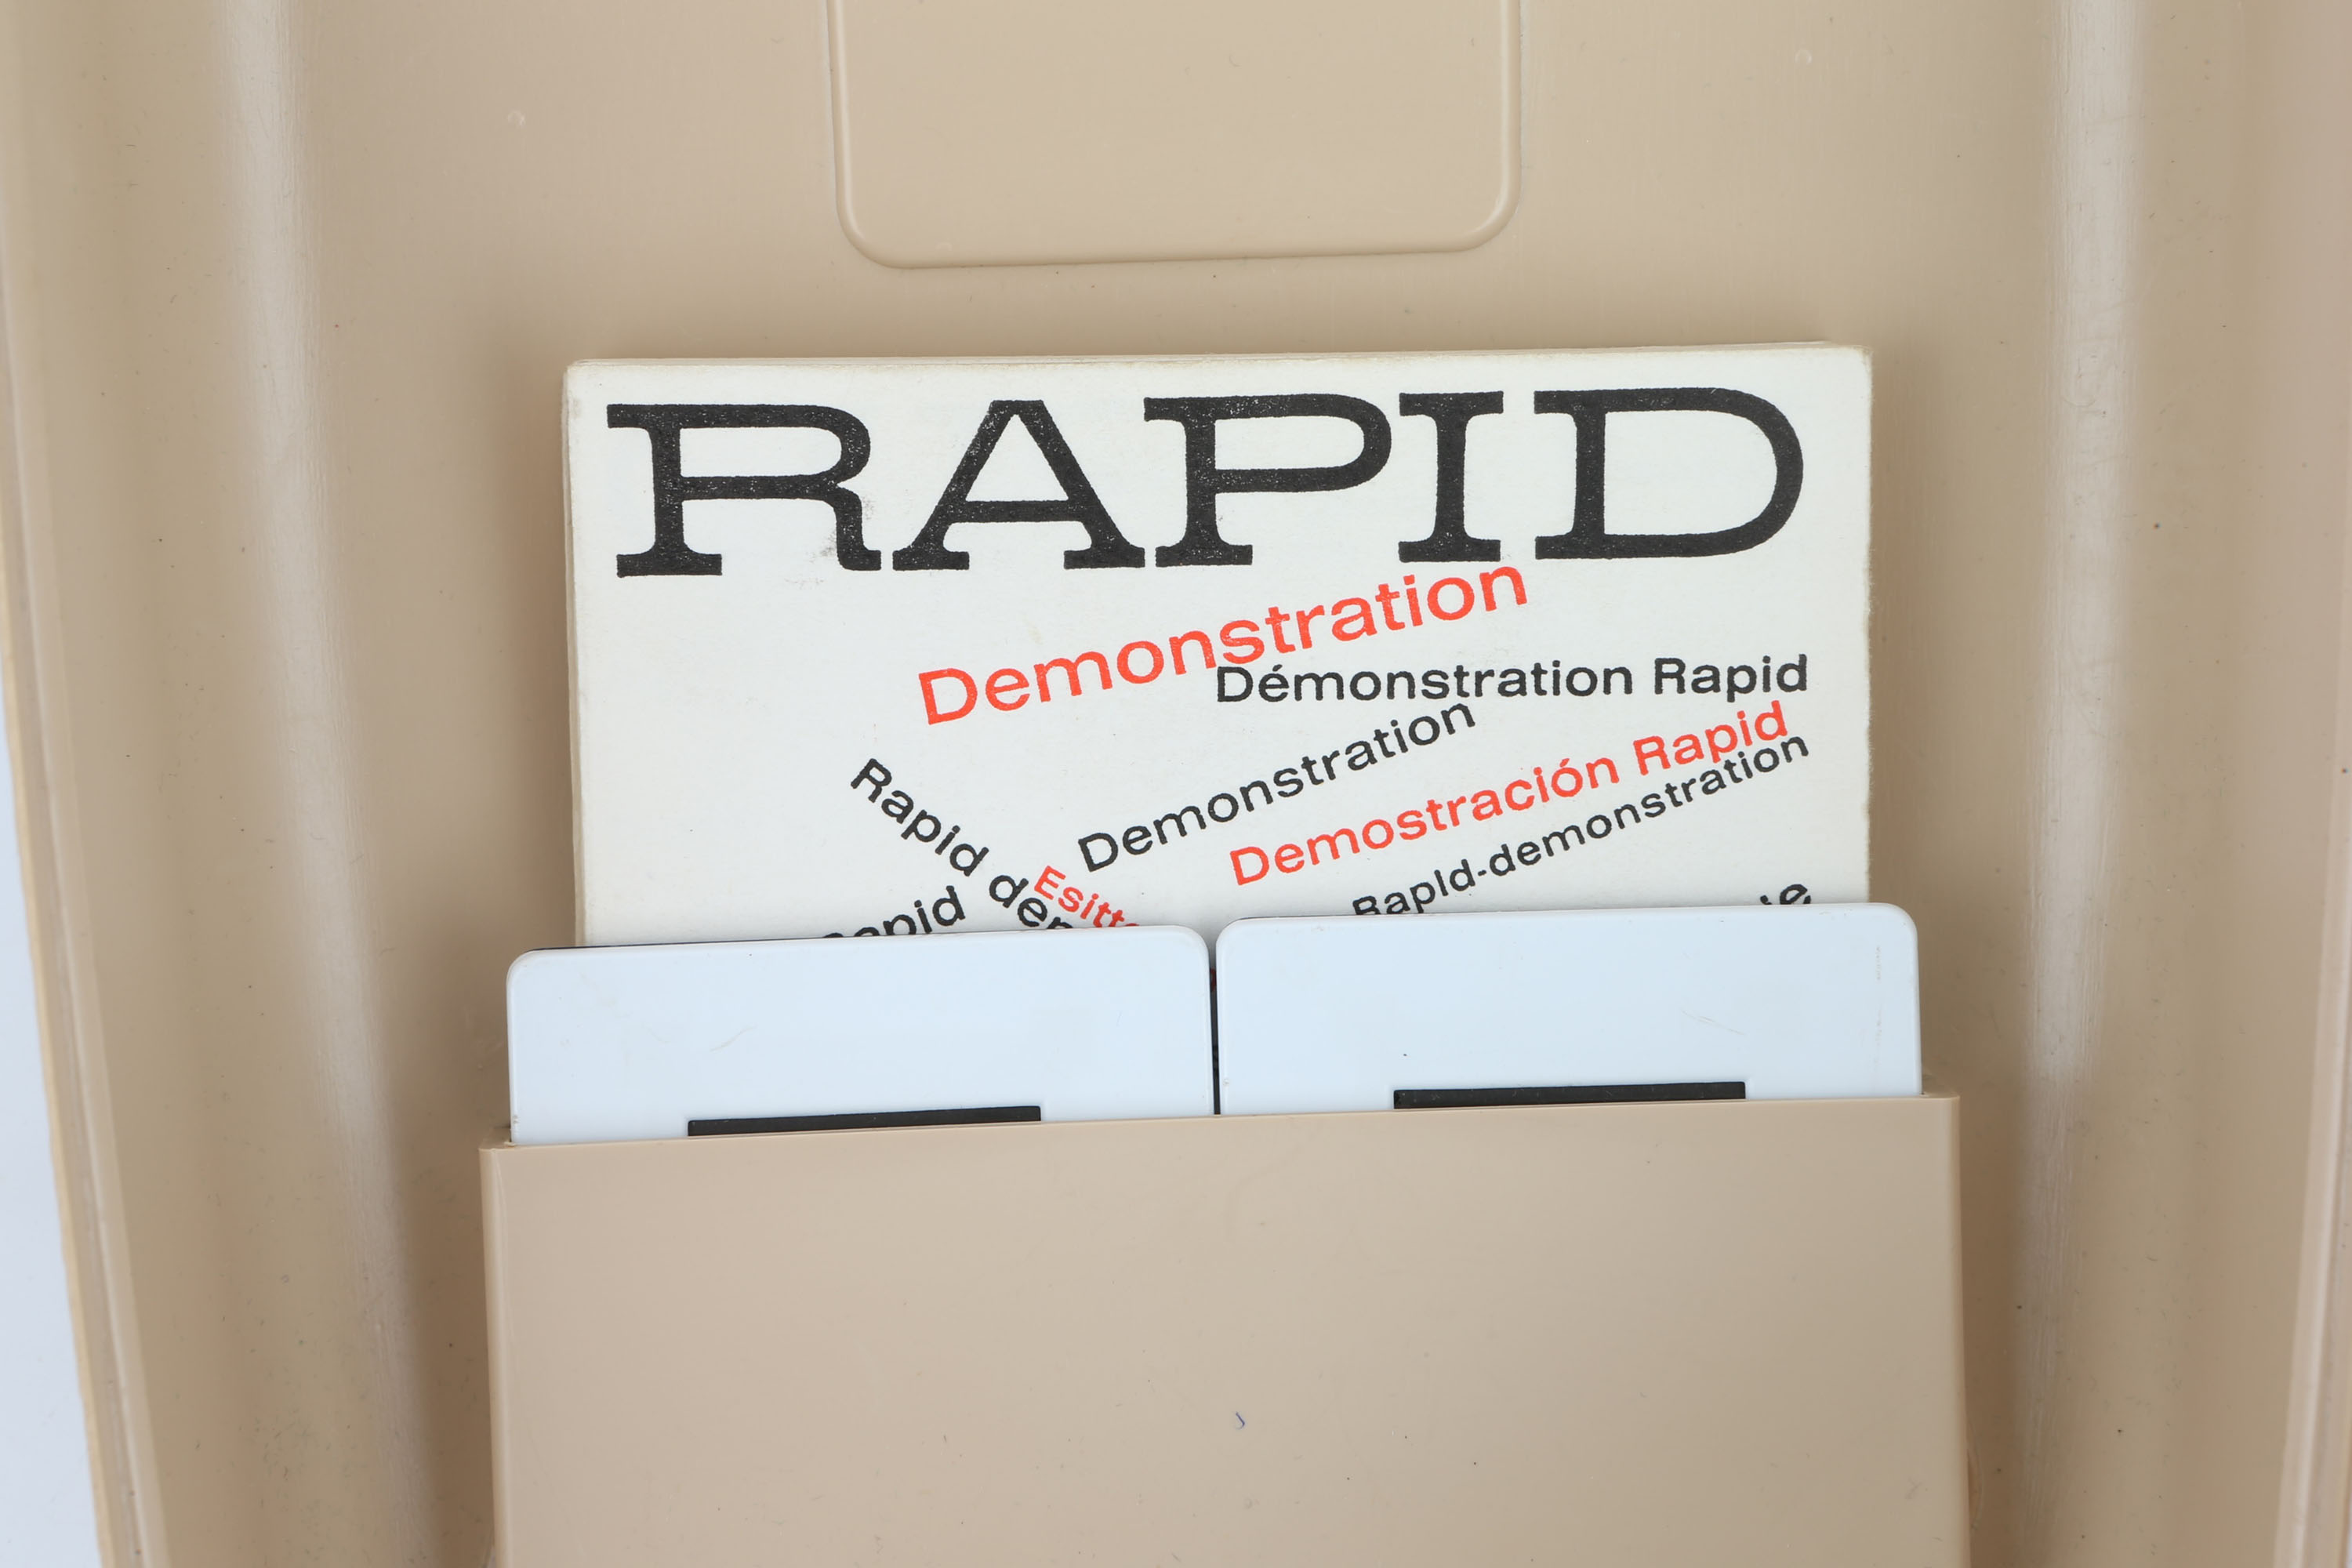 An Agfa Rapid Demonstration Model, - Image 3 of 3